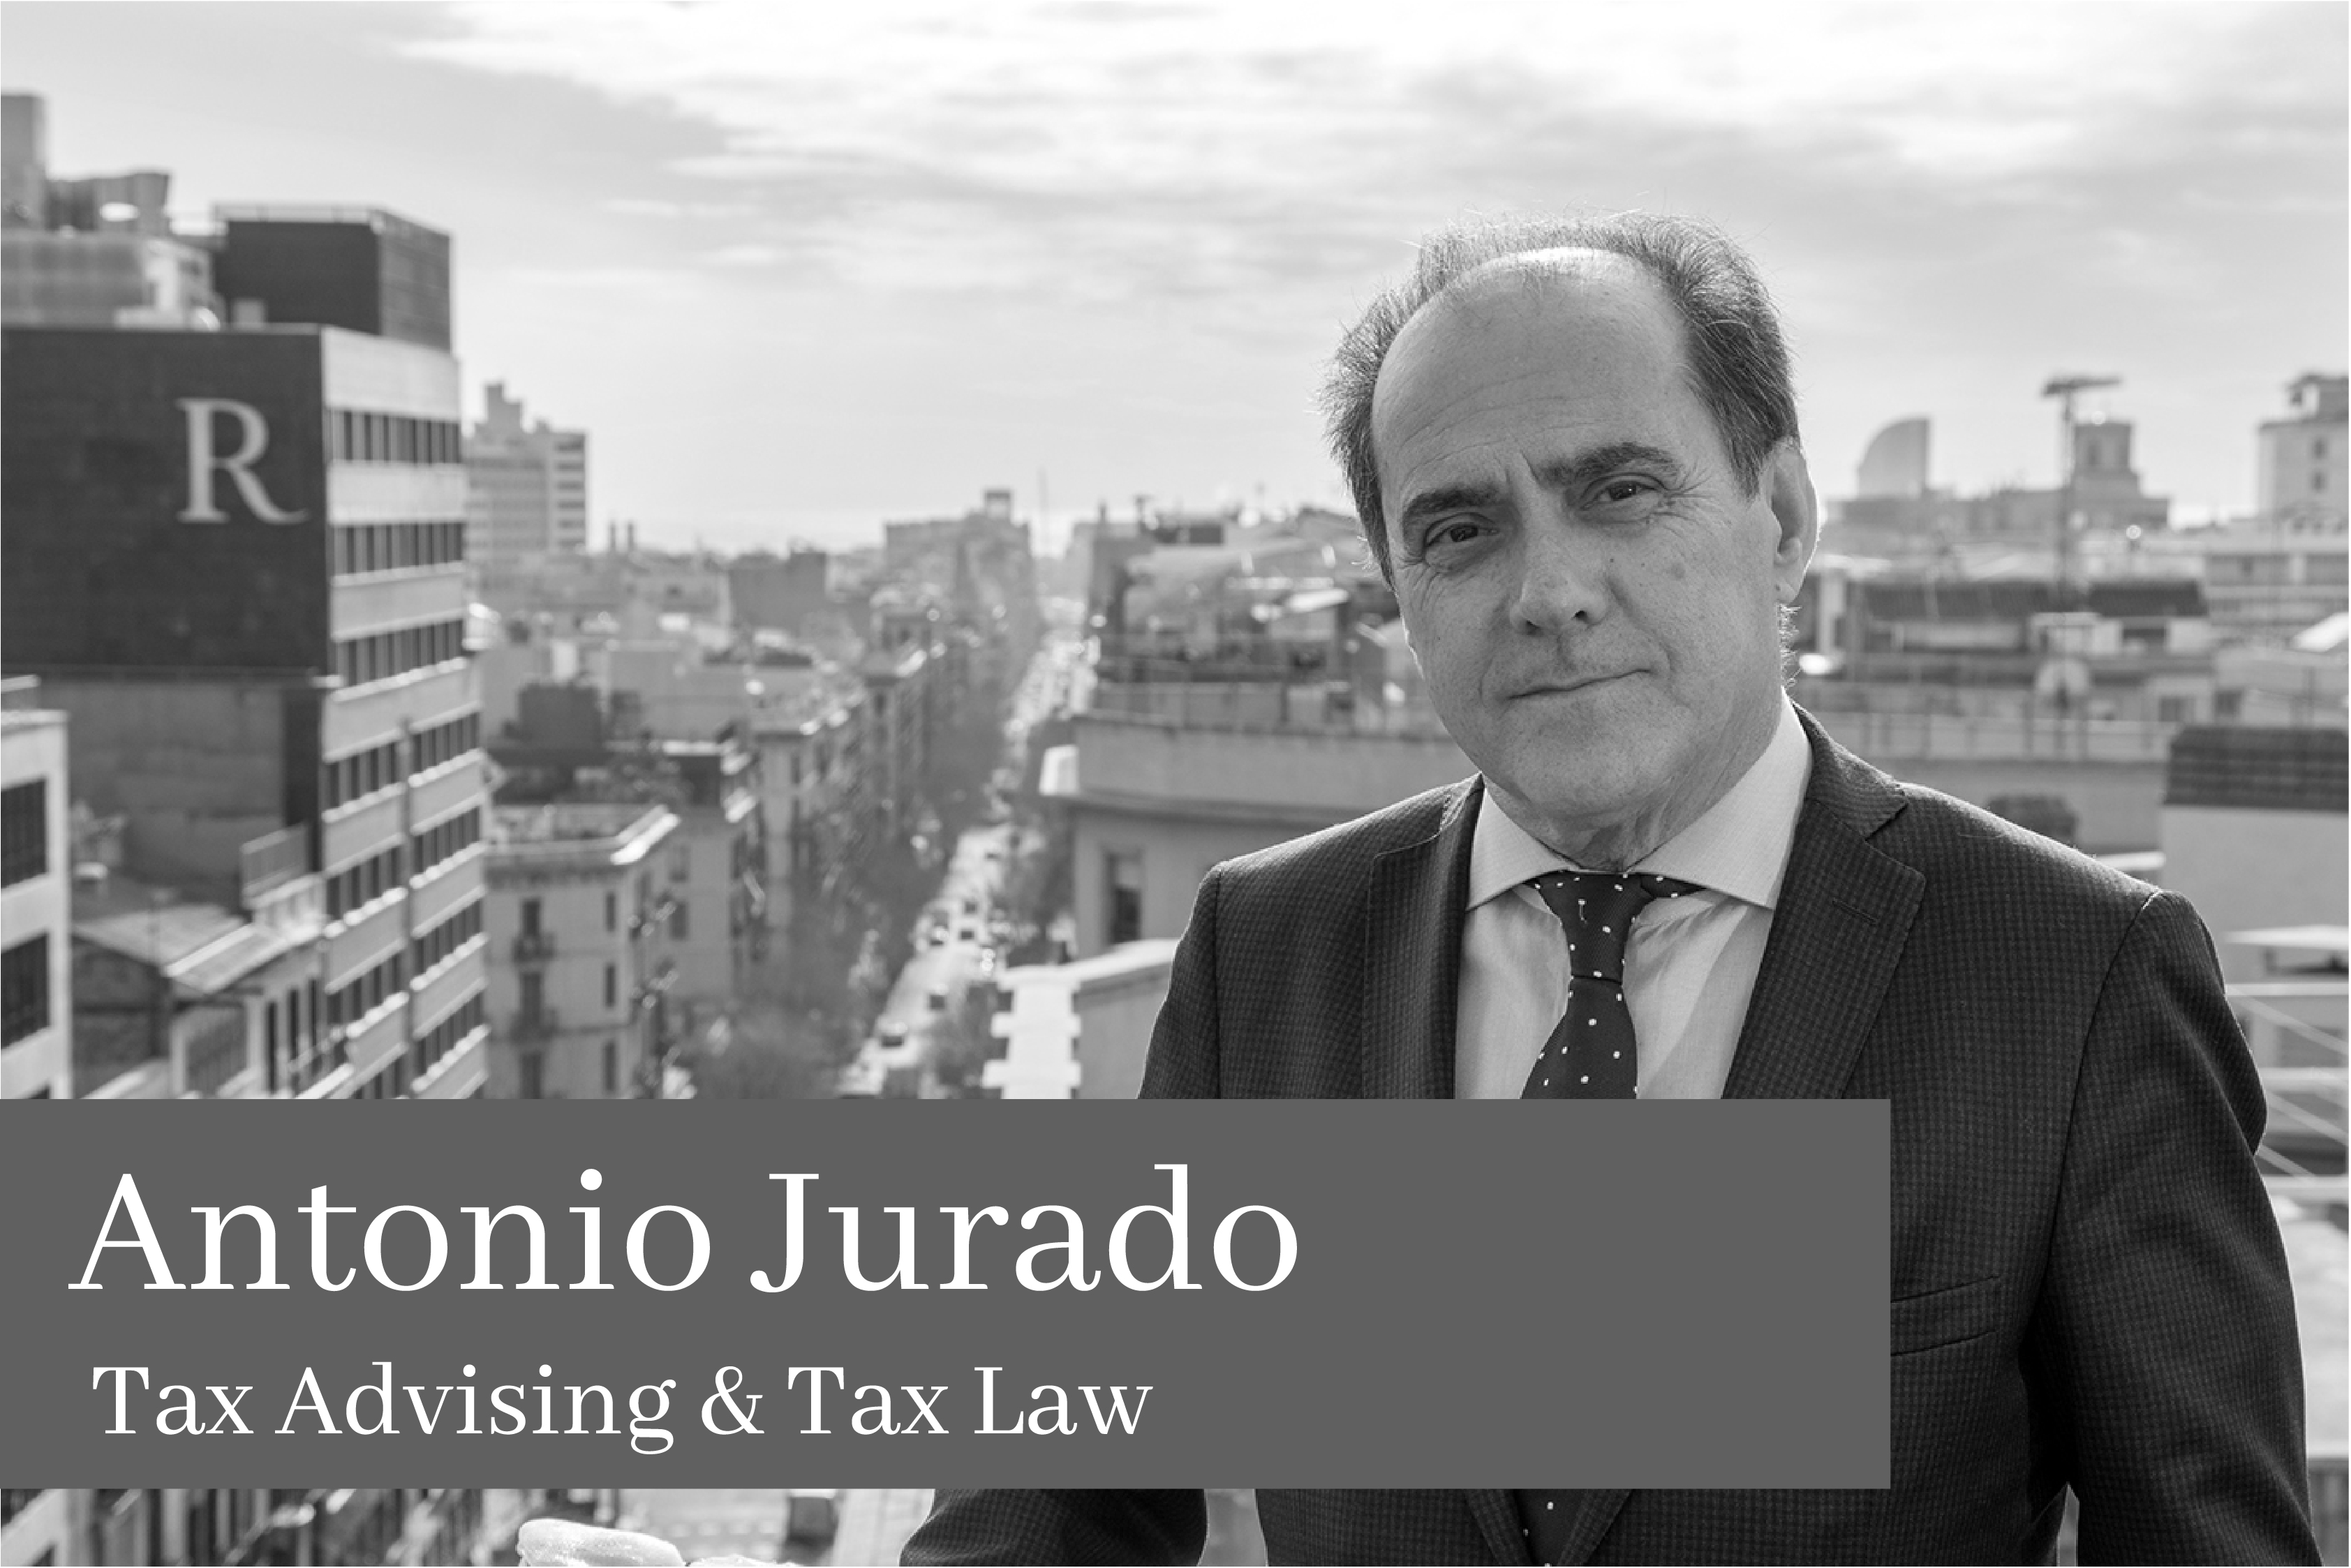 Antonio Jurado Salazar Tax Advising & Tax Law